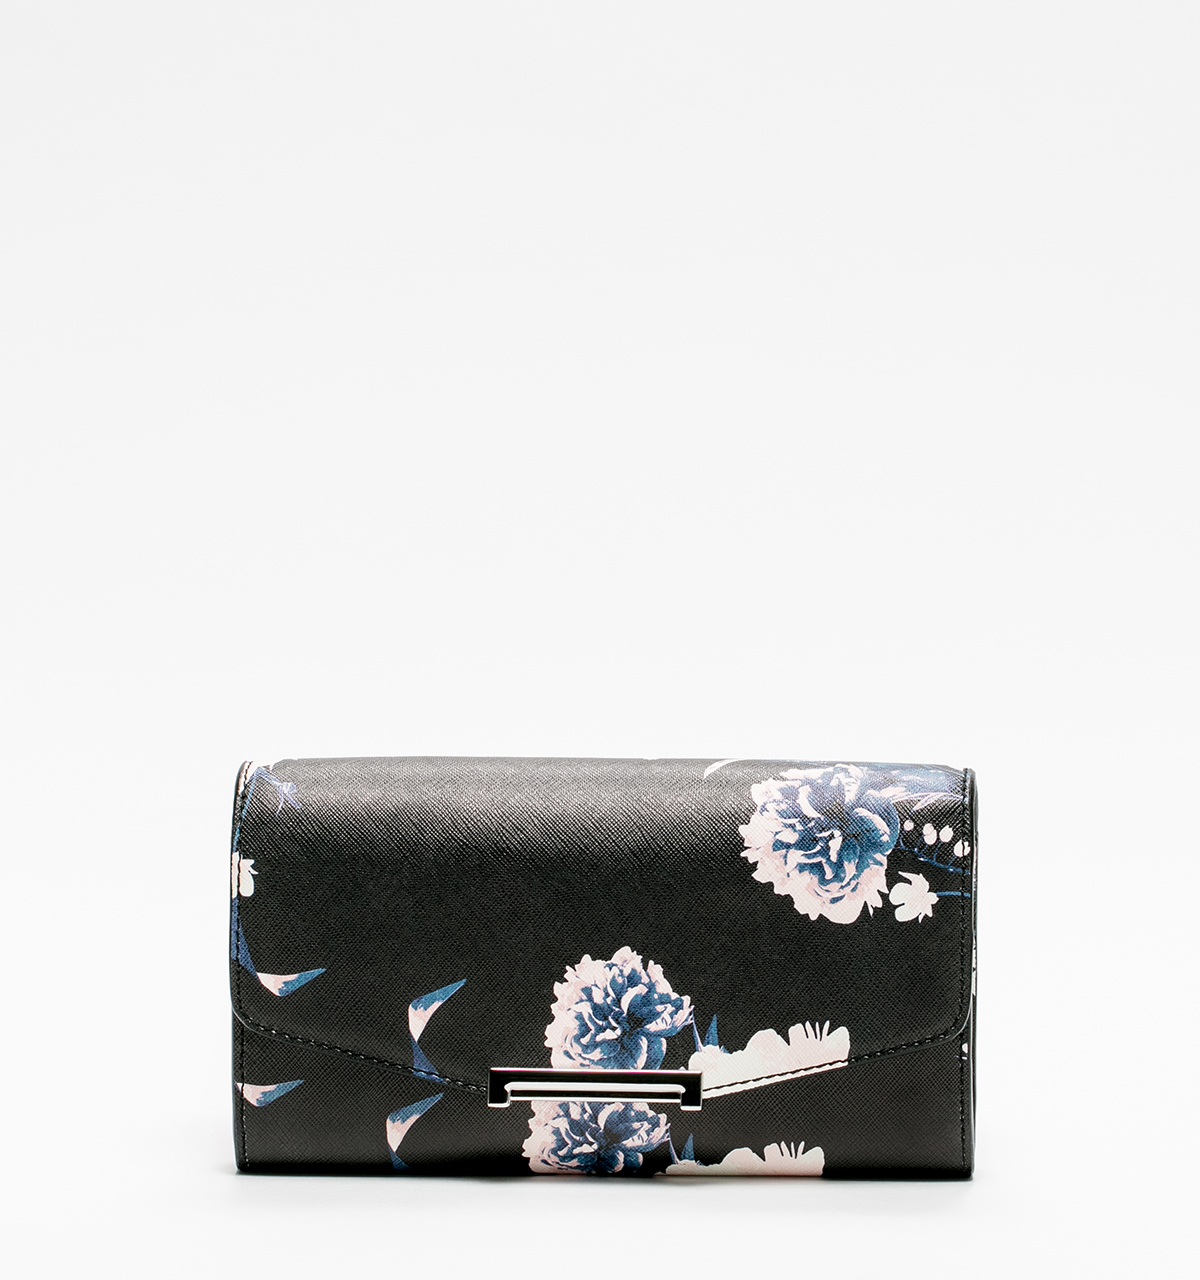 Mara Crossbody Wallet